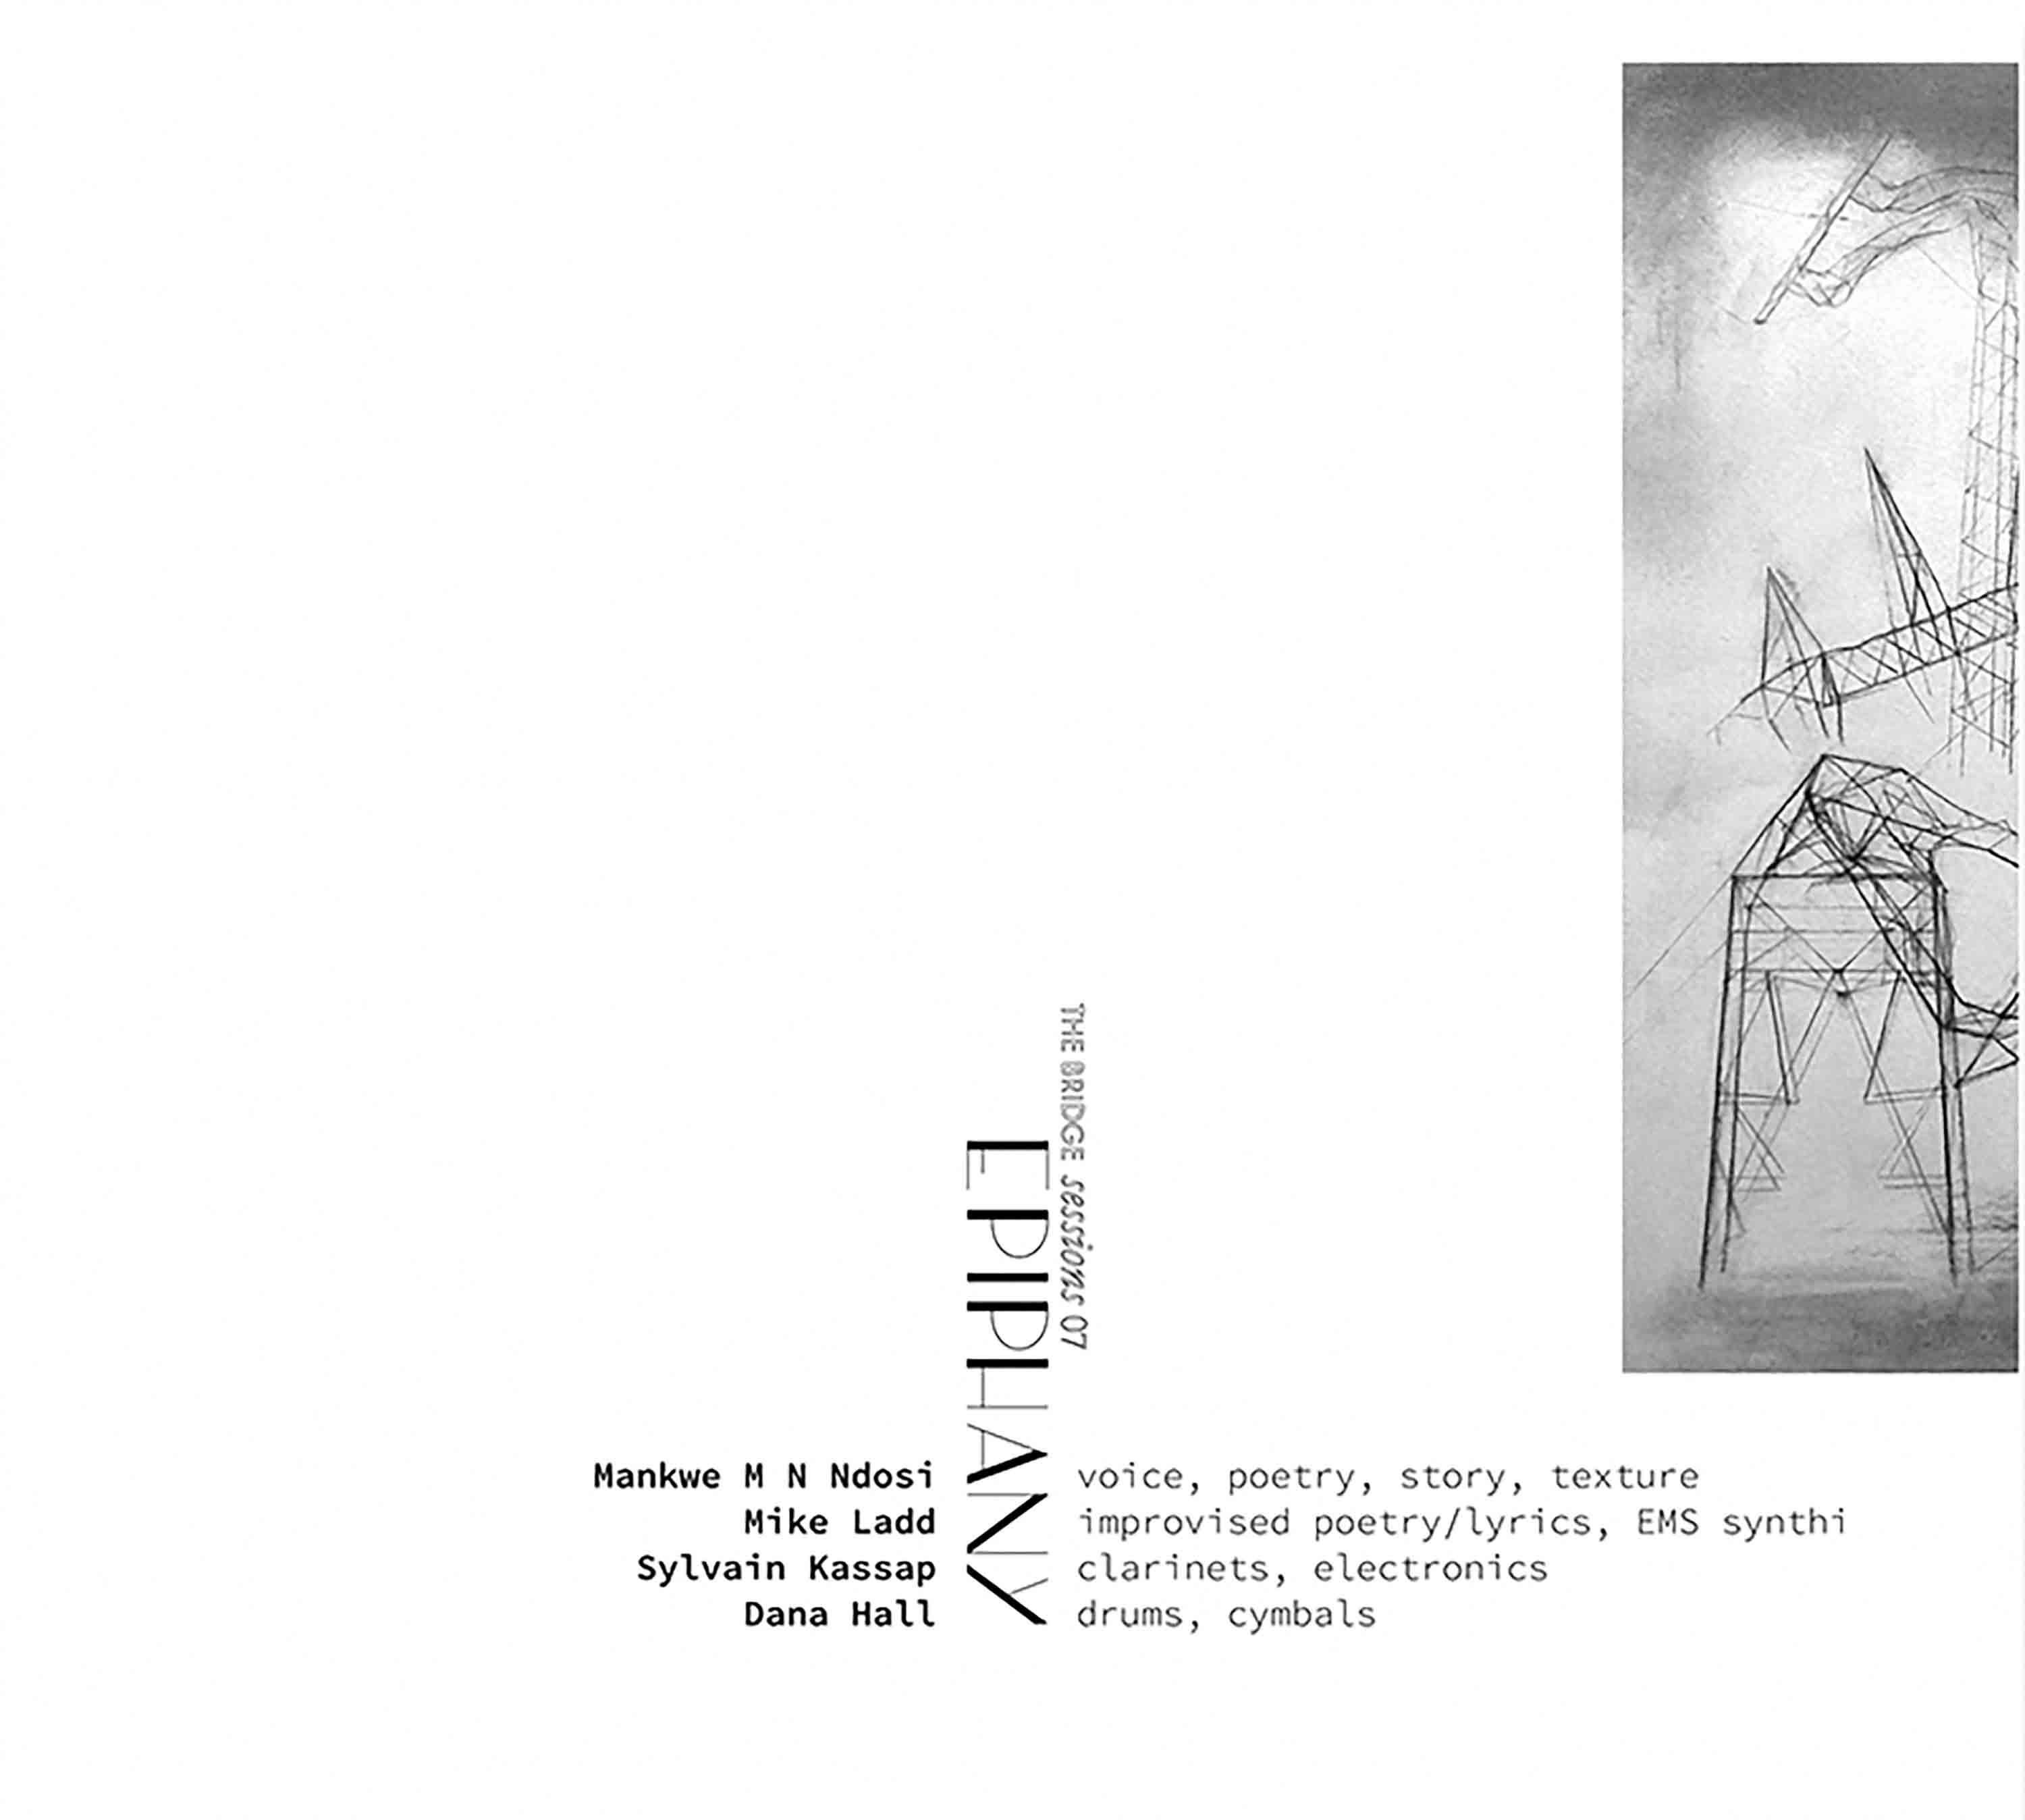 Front cover of the album EPIPHANY